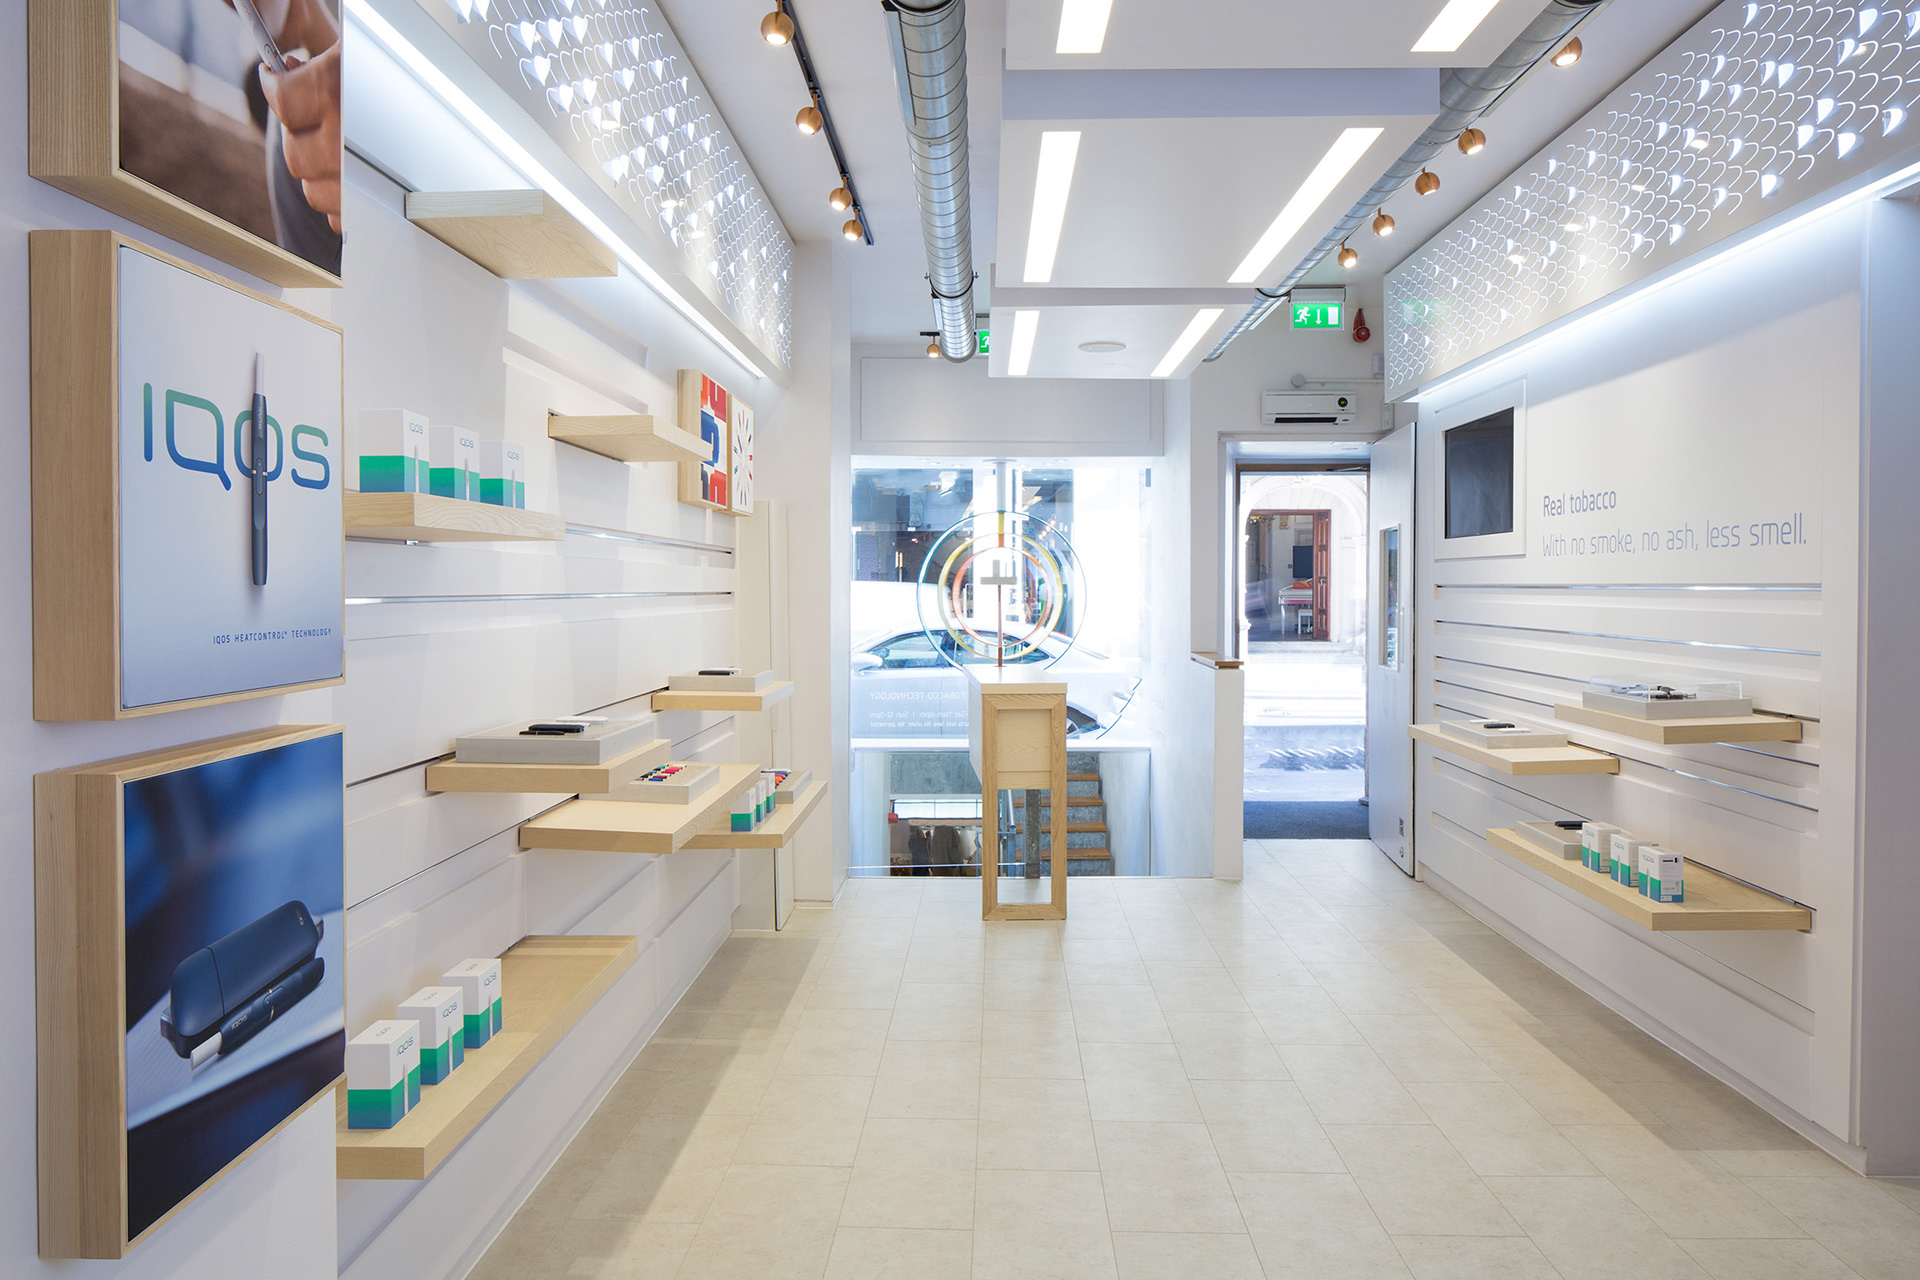 Architectural Interiors at IQOS Store in Soho looking outside